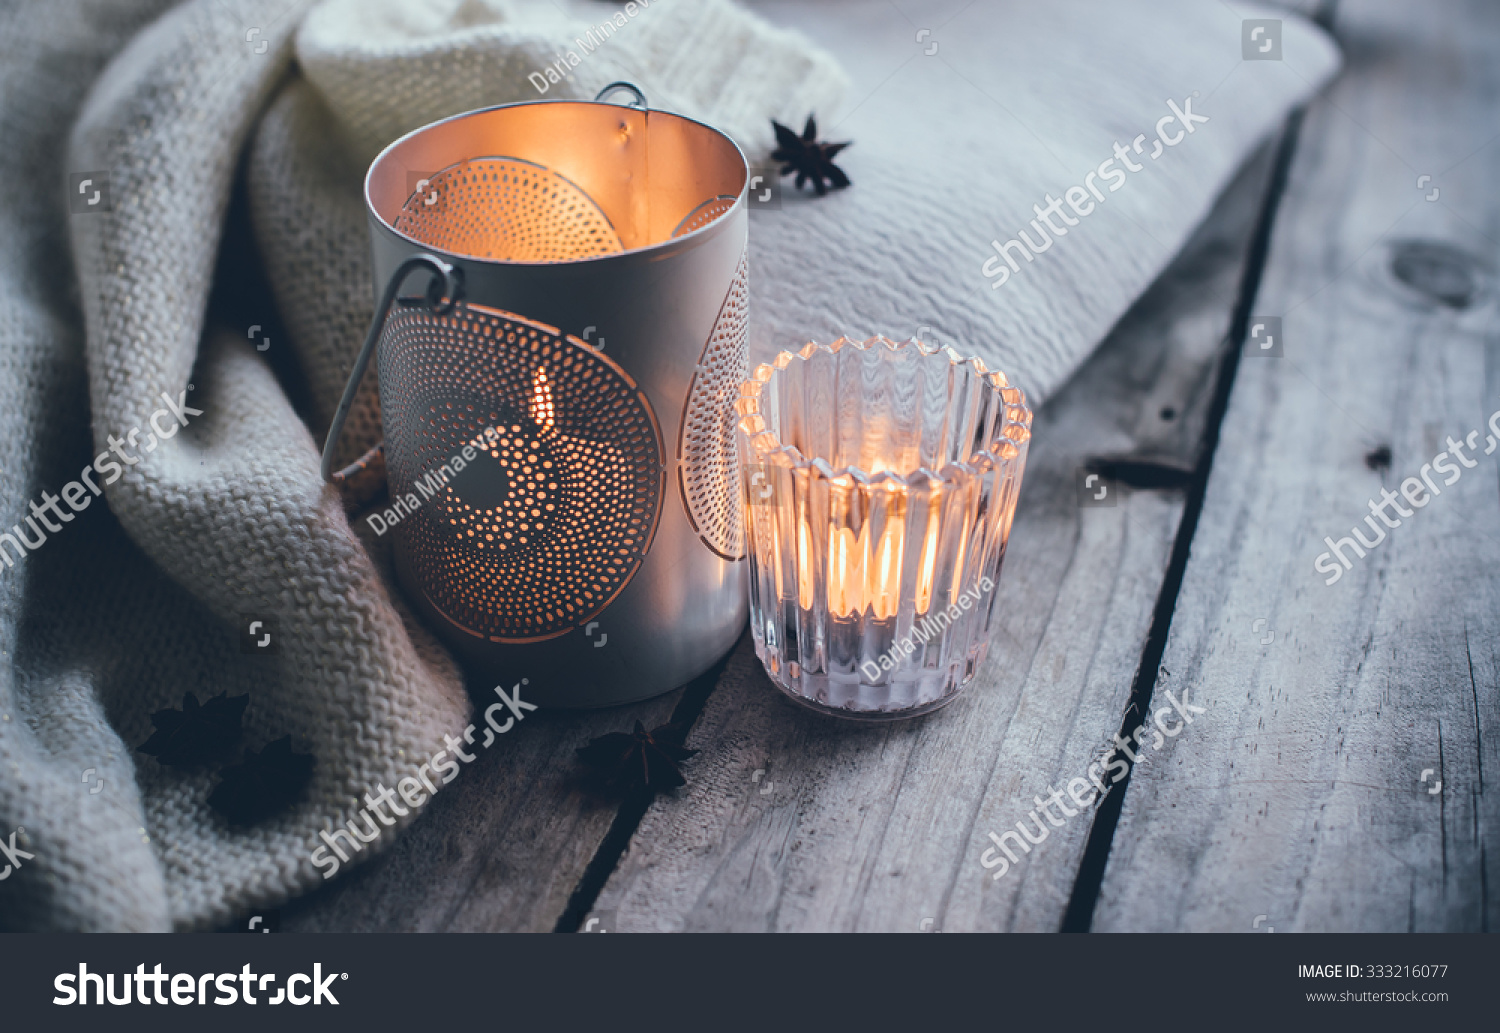 Fill your domain with aromas - Whether it be a scented candle you love, the woody perfume of incense or thecomforting fragrance of a slow cooker left on all day, infuse your space with scentsthat make it feel good to come home after a long day of battling the elements.